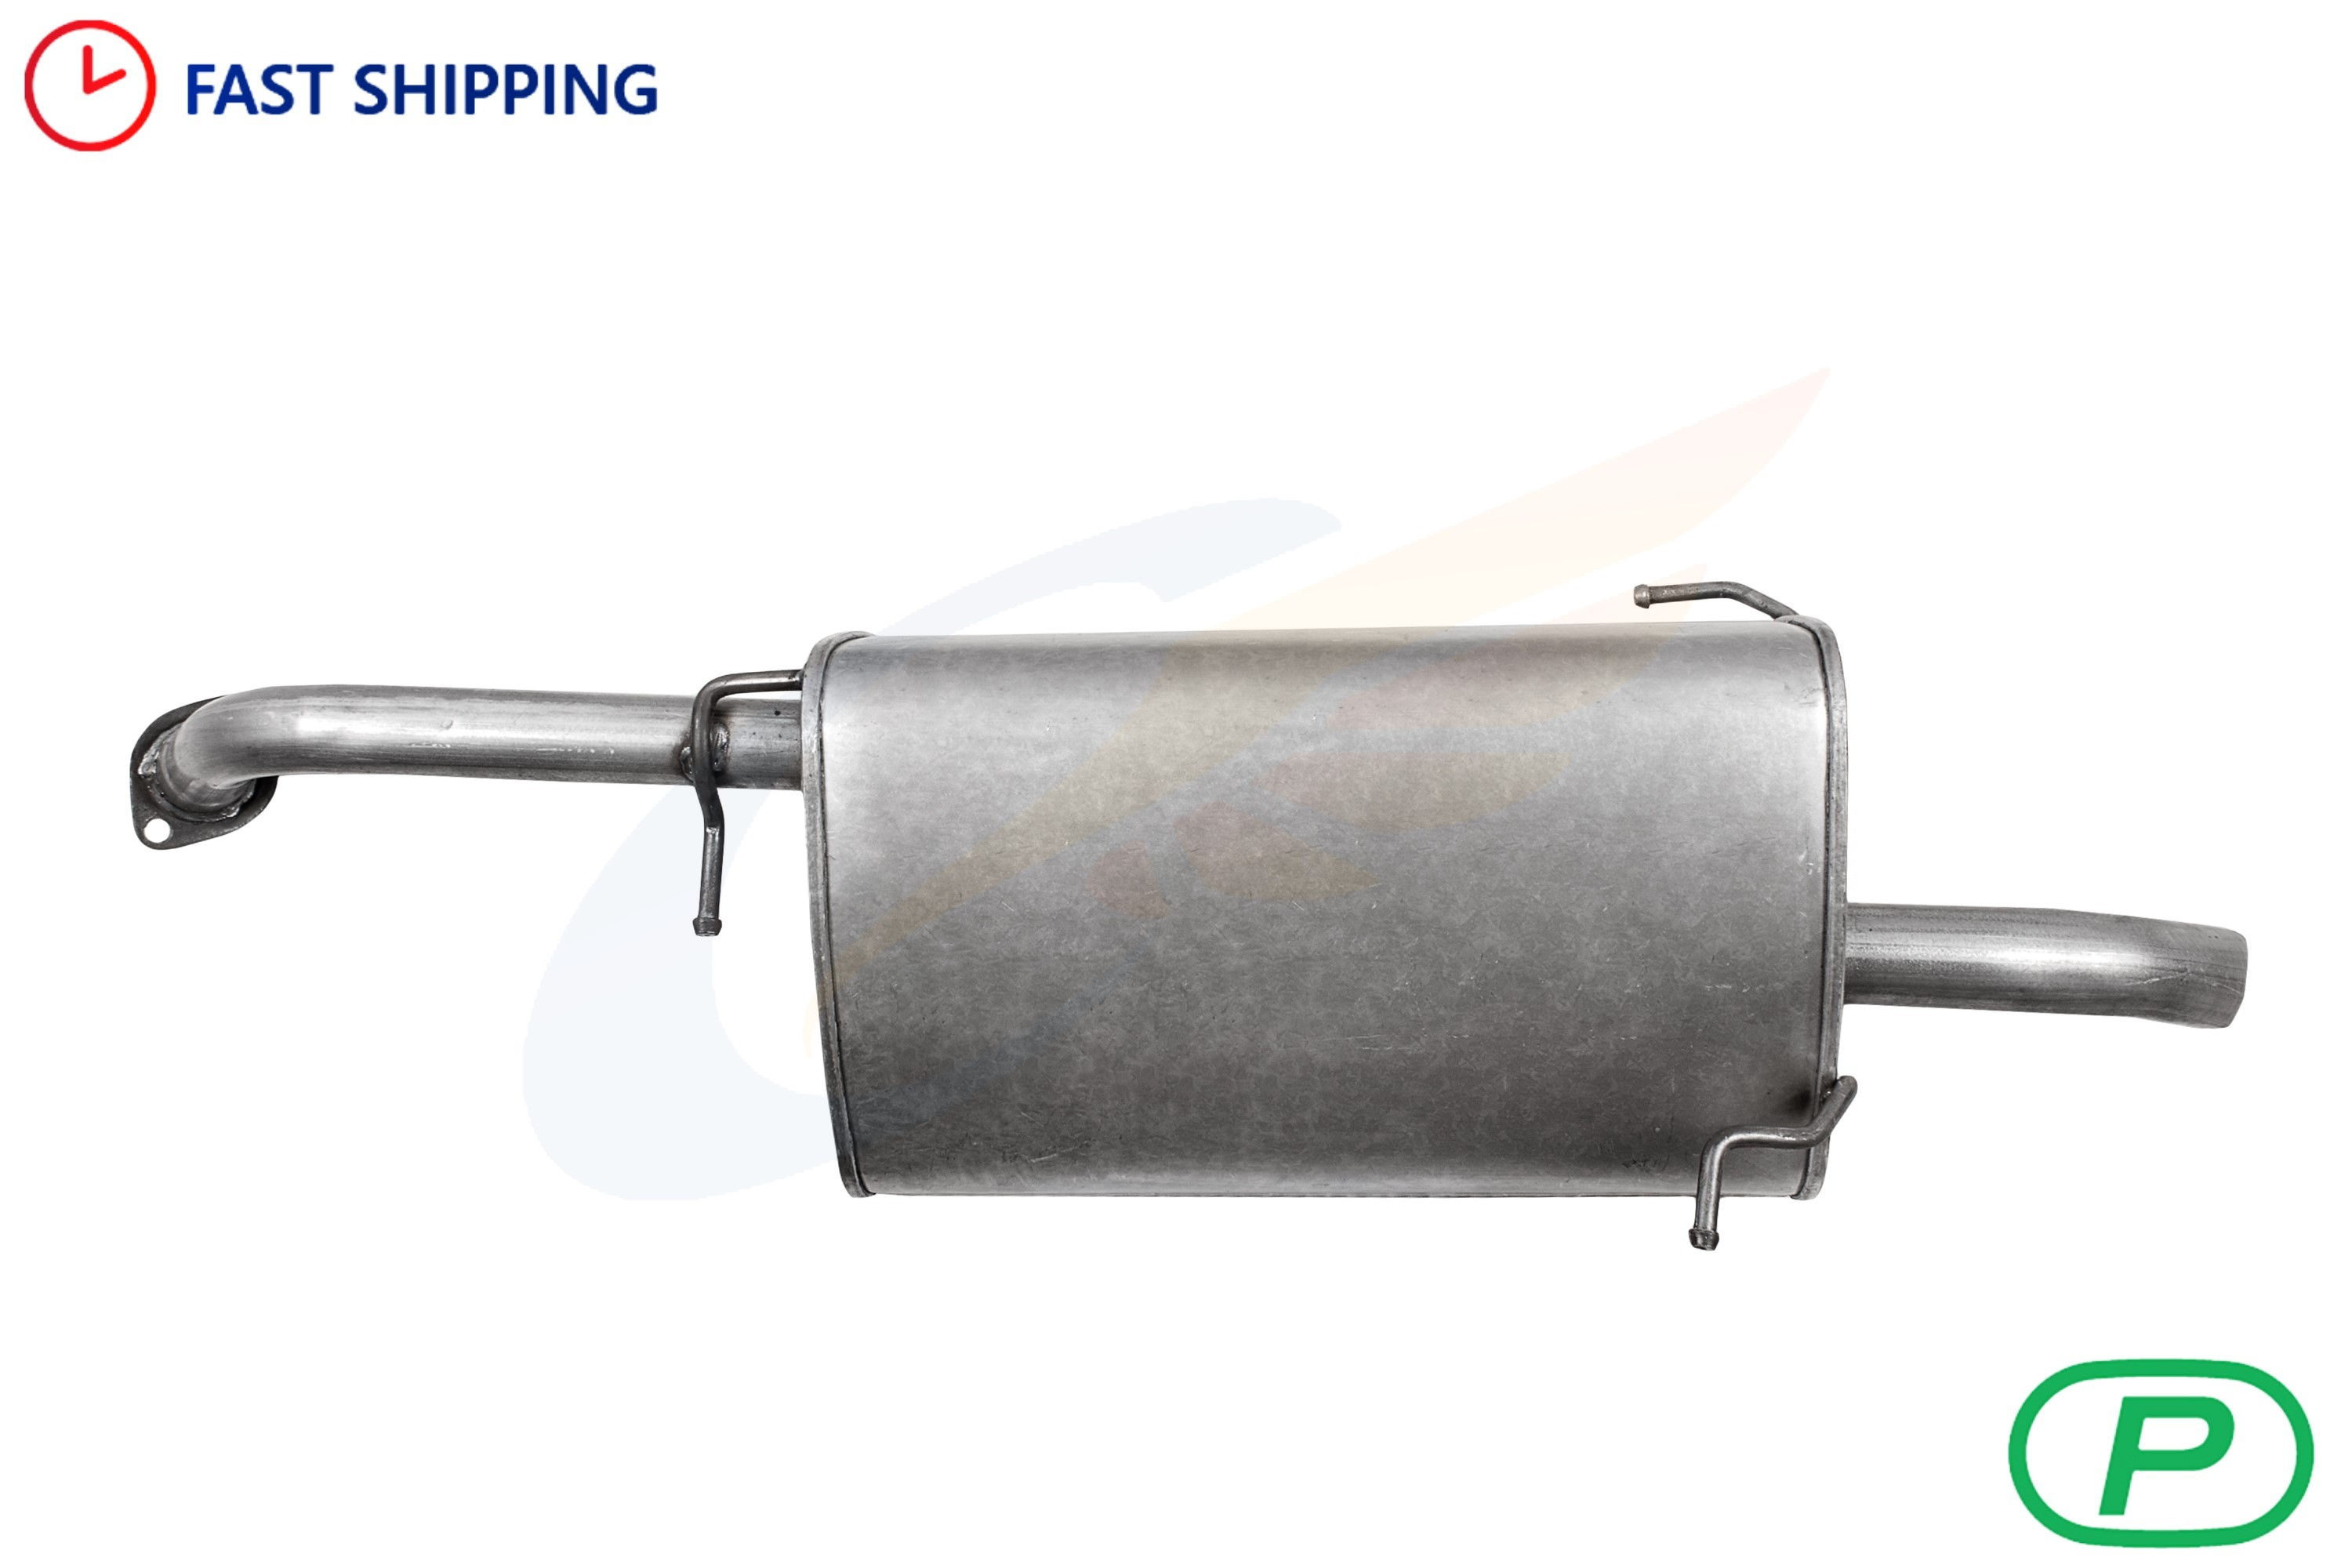 FRONT PIPE /& SILENCER BOX Chevrolet Lacetti 1.6 Petrol Estate 01//2005 to 12//2011